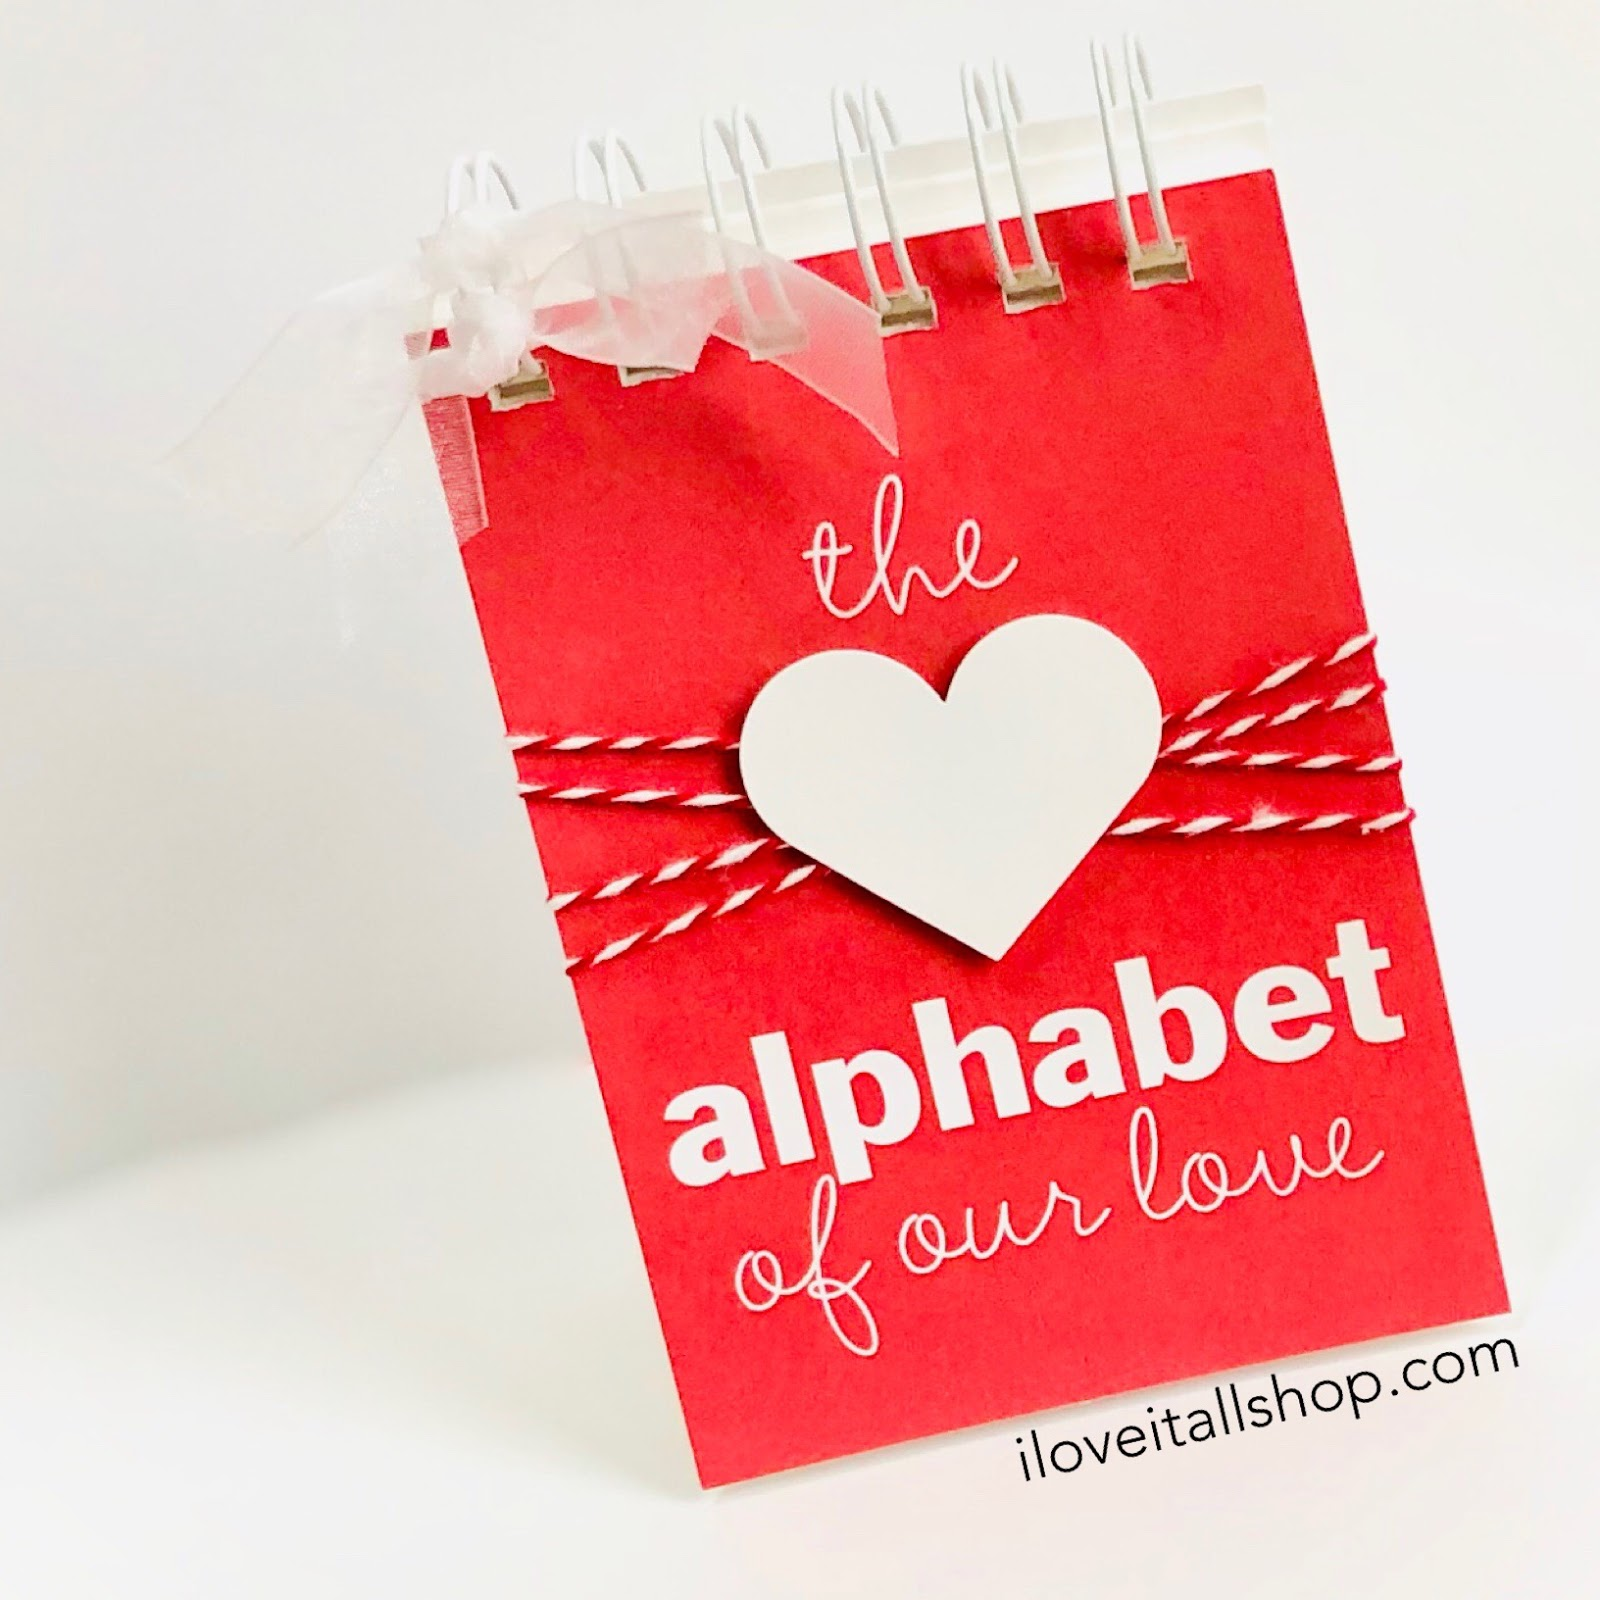 #Alphabet of Our Love #list ideas #love letters #Alphabet List Ideas #Book of Love #Love Letter Ideas #I Love It All